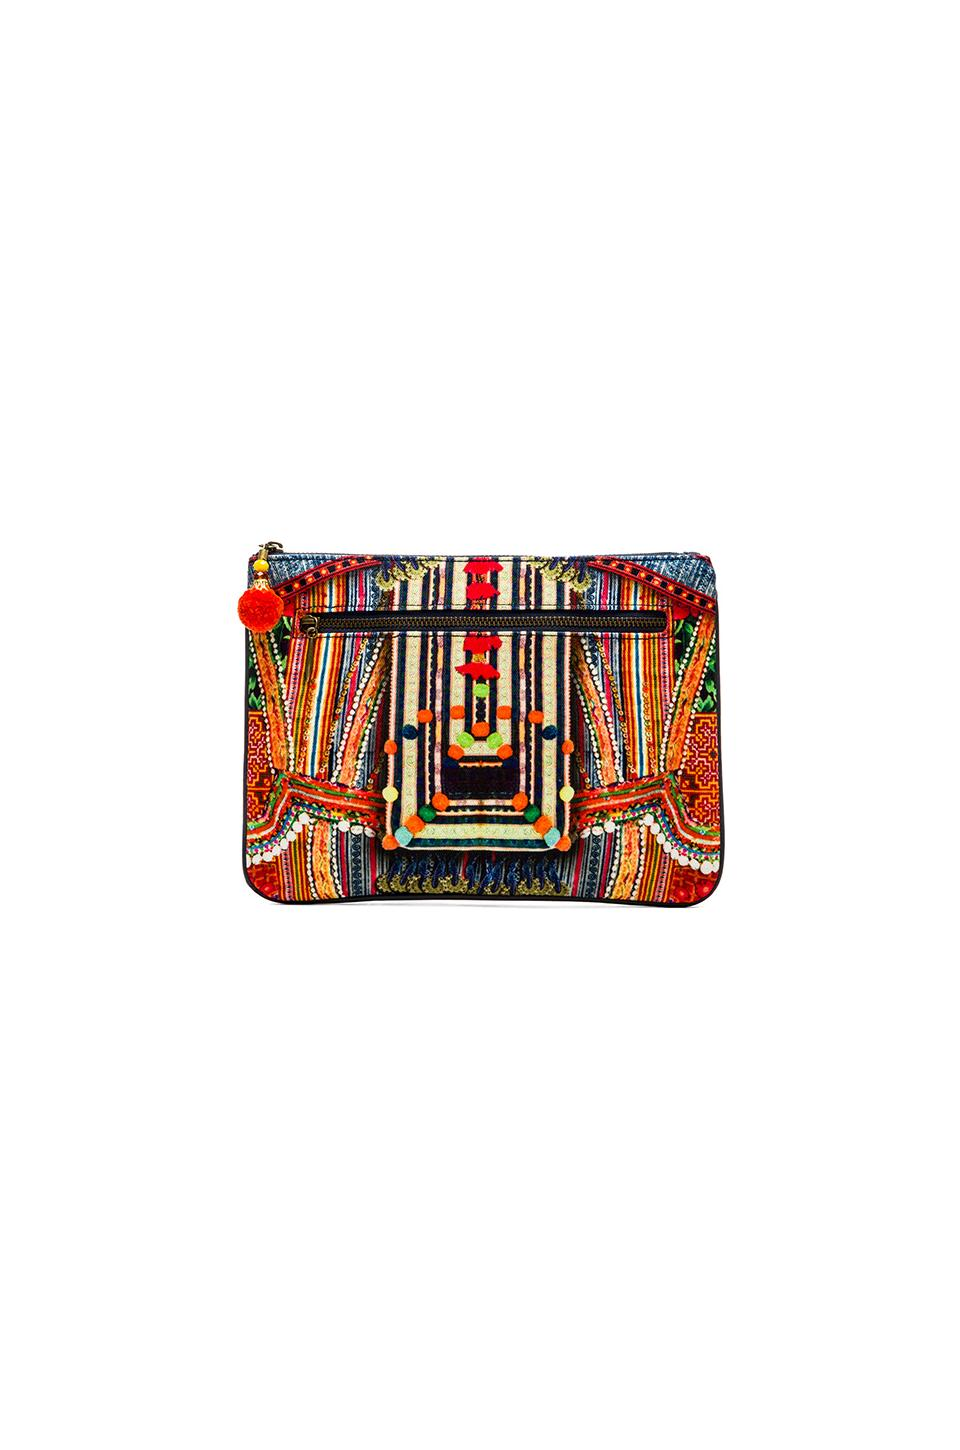 Camilla Small Canvas Clutch in Trek of the Nung